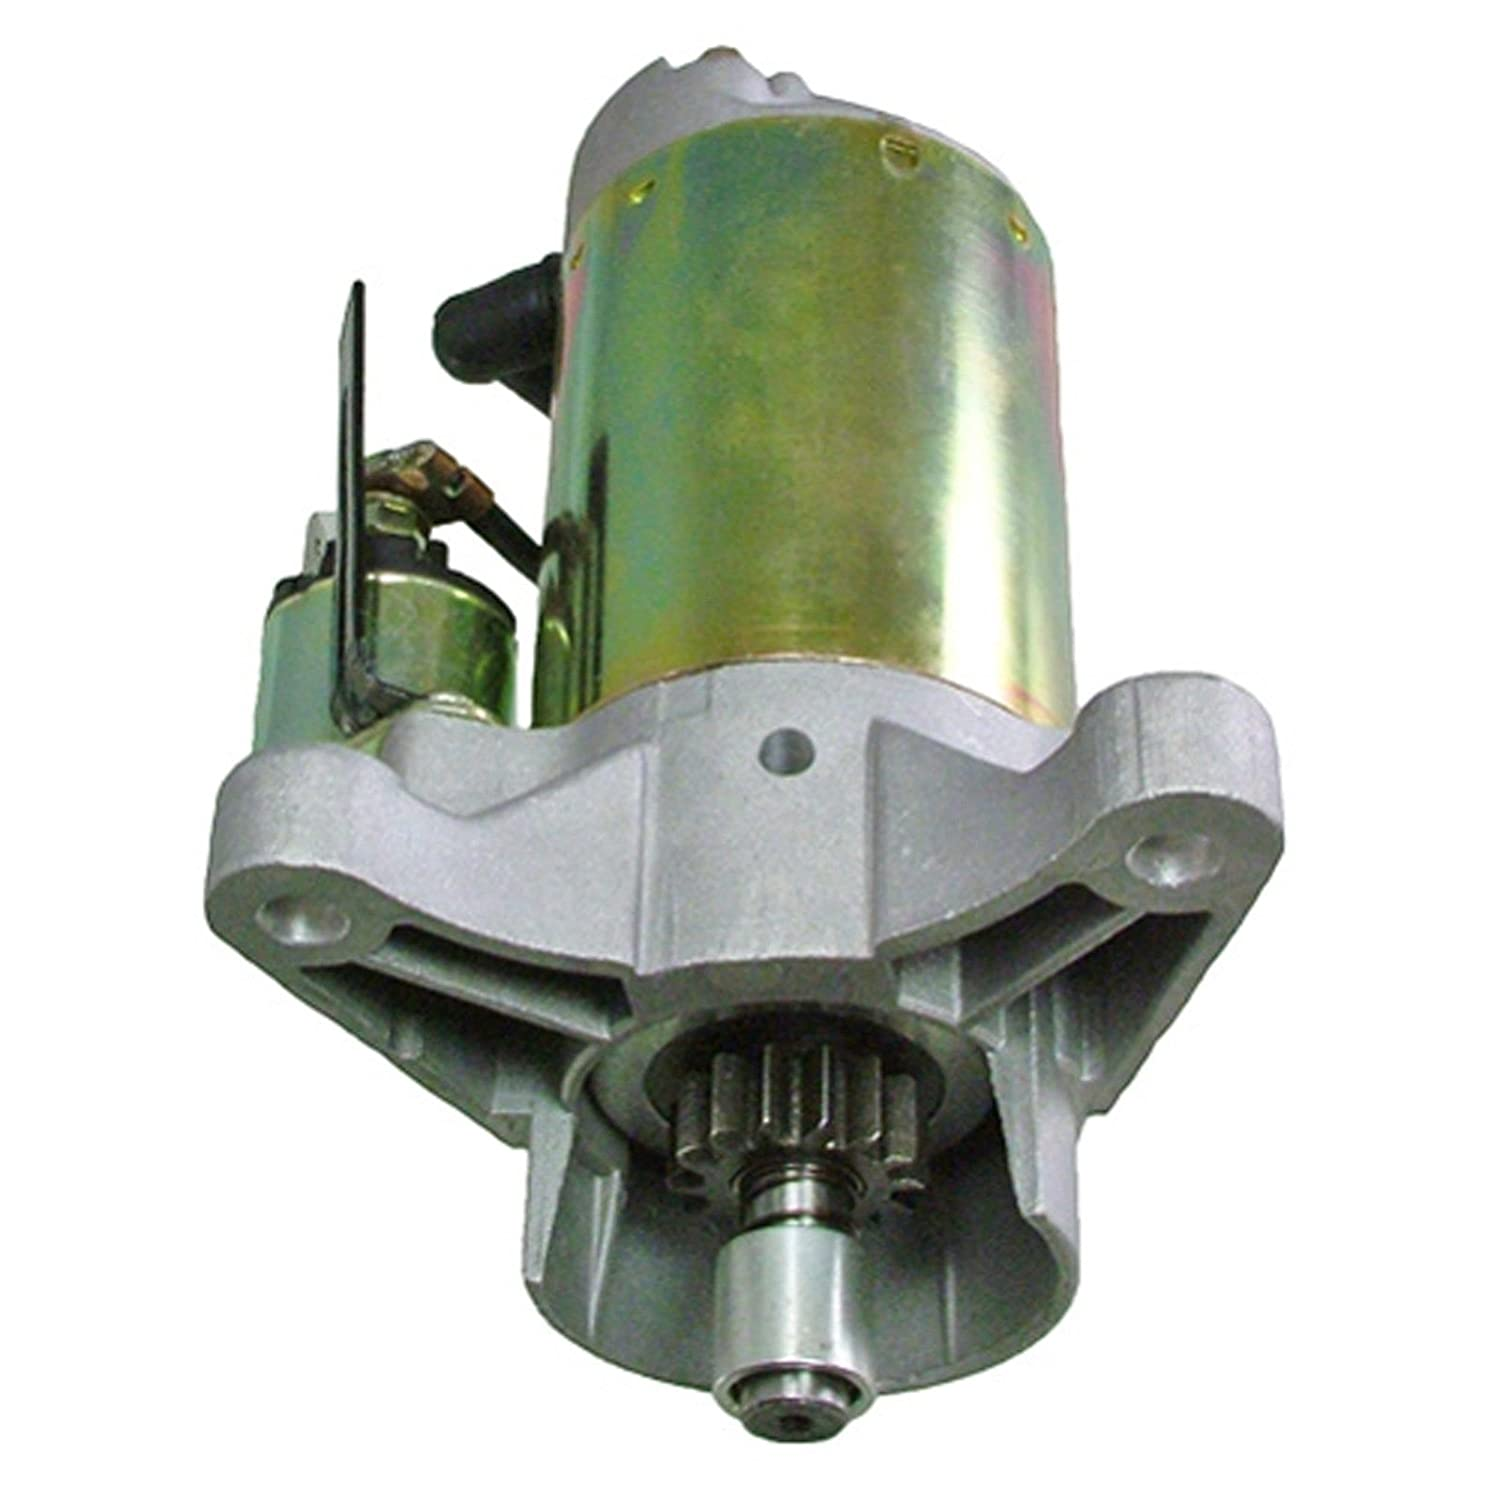 Amazon.com: 100% NEW STARTER MOTOR FOR RIDING LAWN MOWER TRACTOR Fits HONDA 3813 HT3813: Automotive